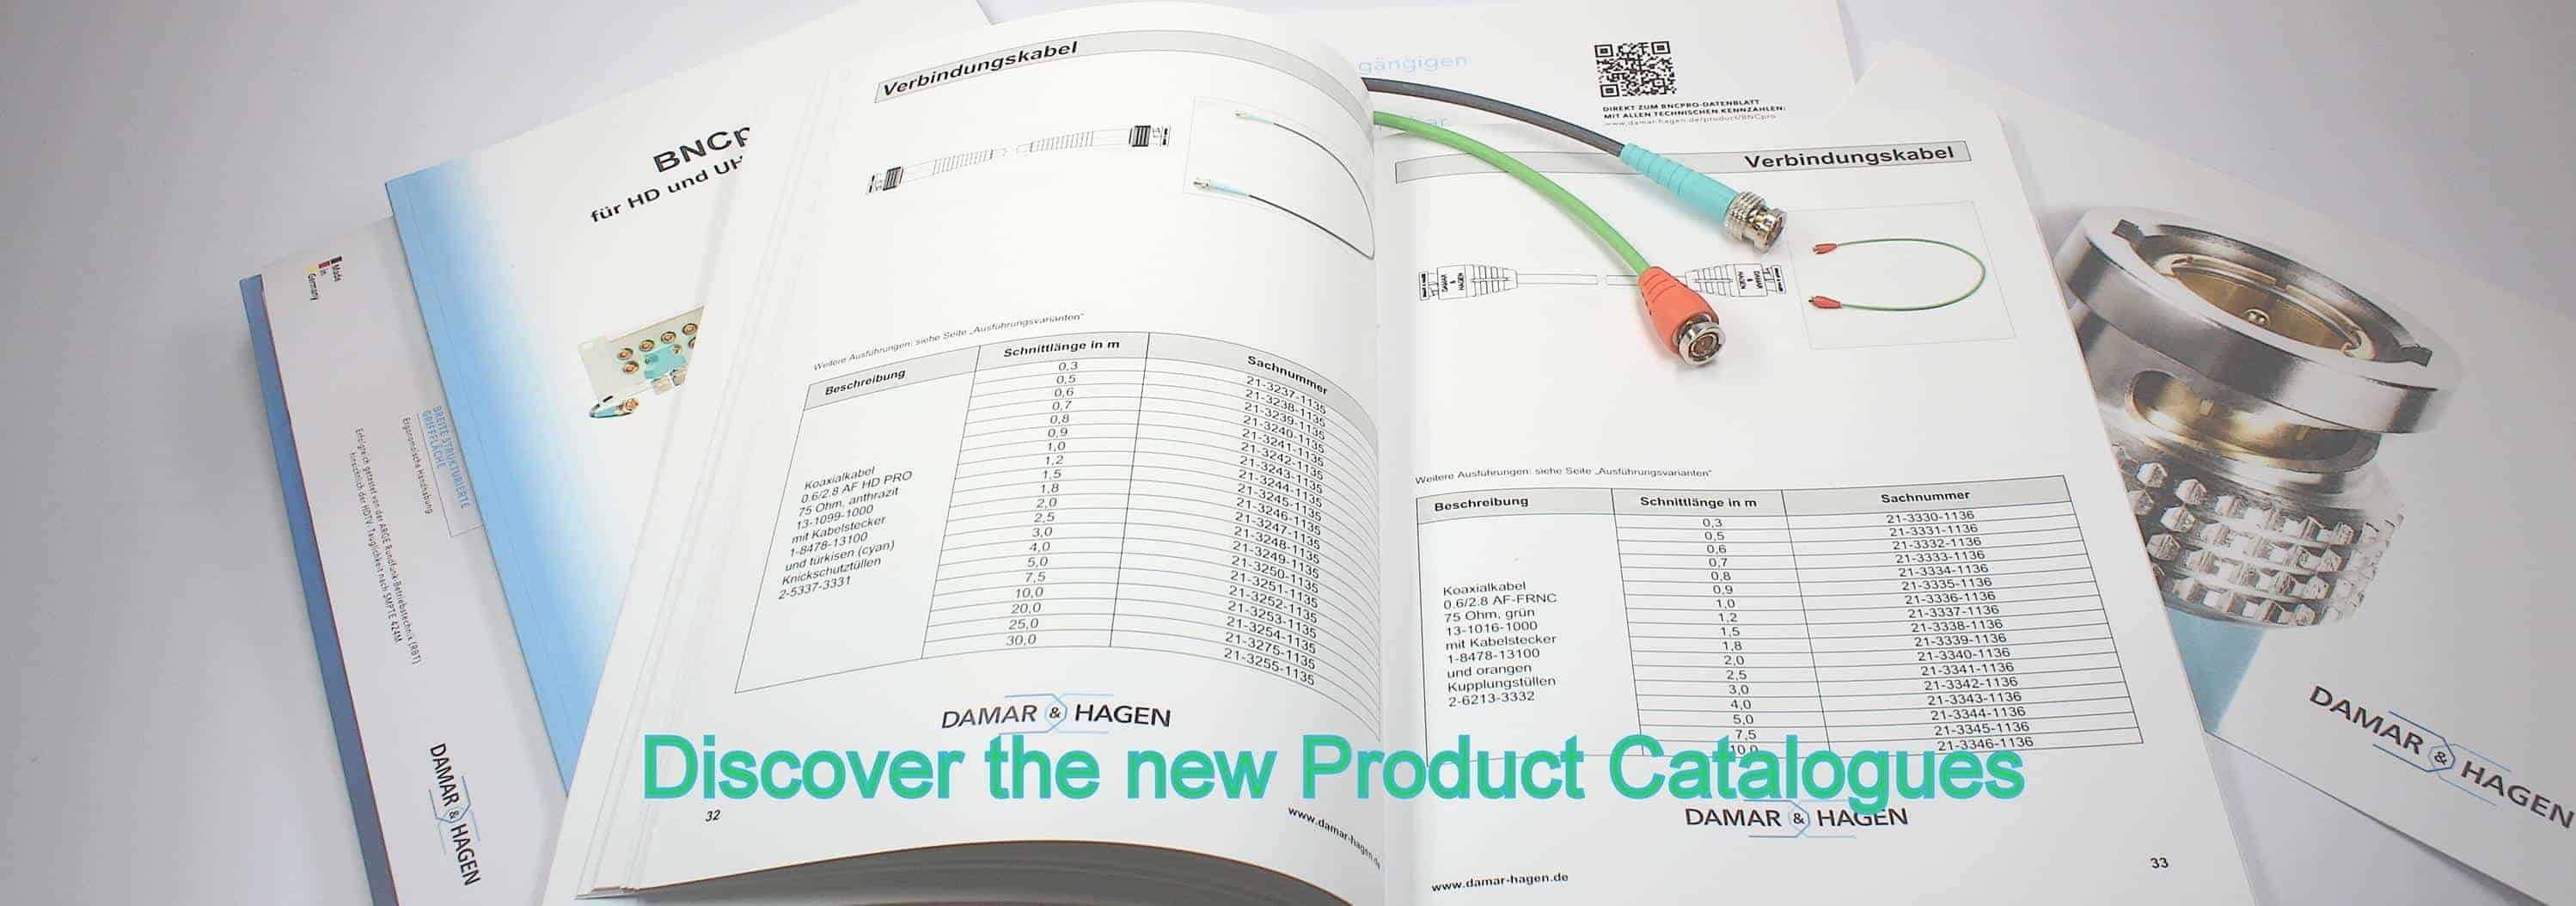 Discover-the-new-product-catalogues-1